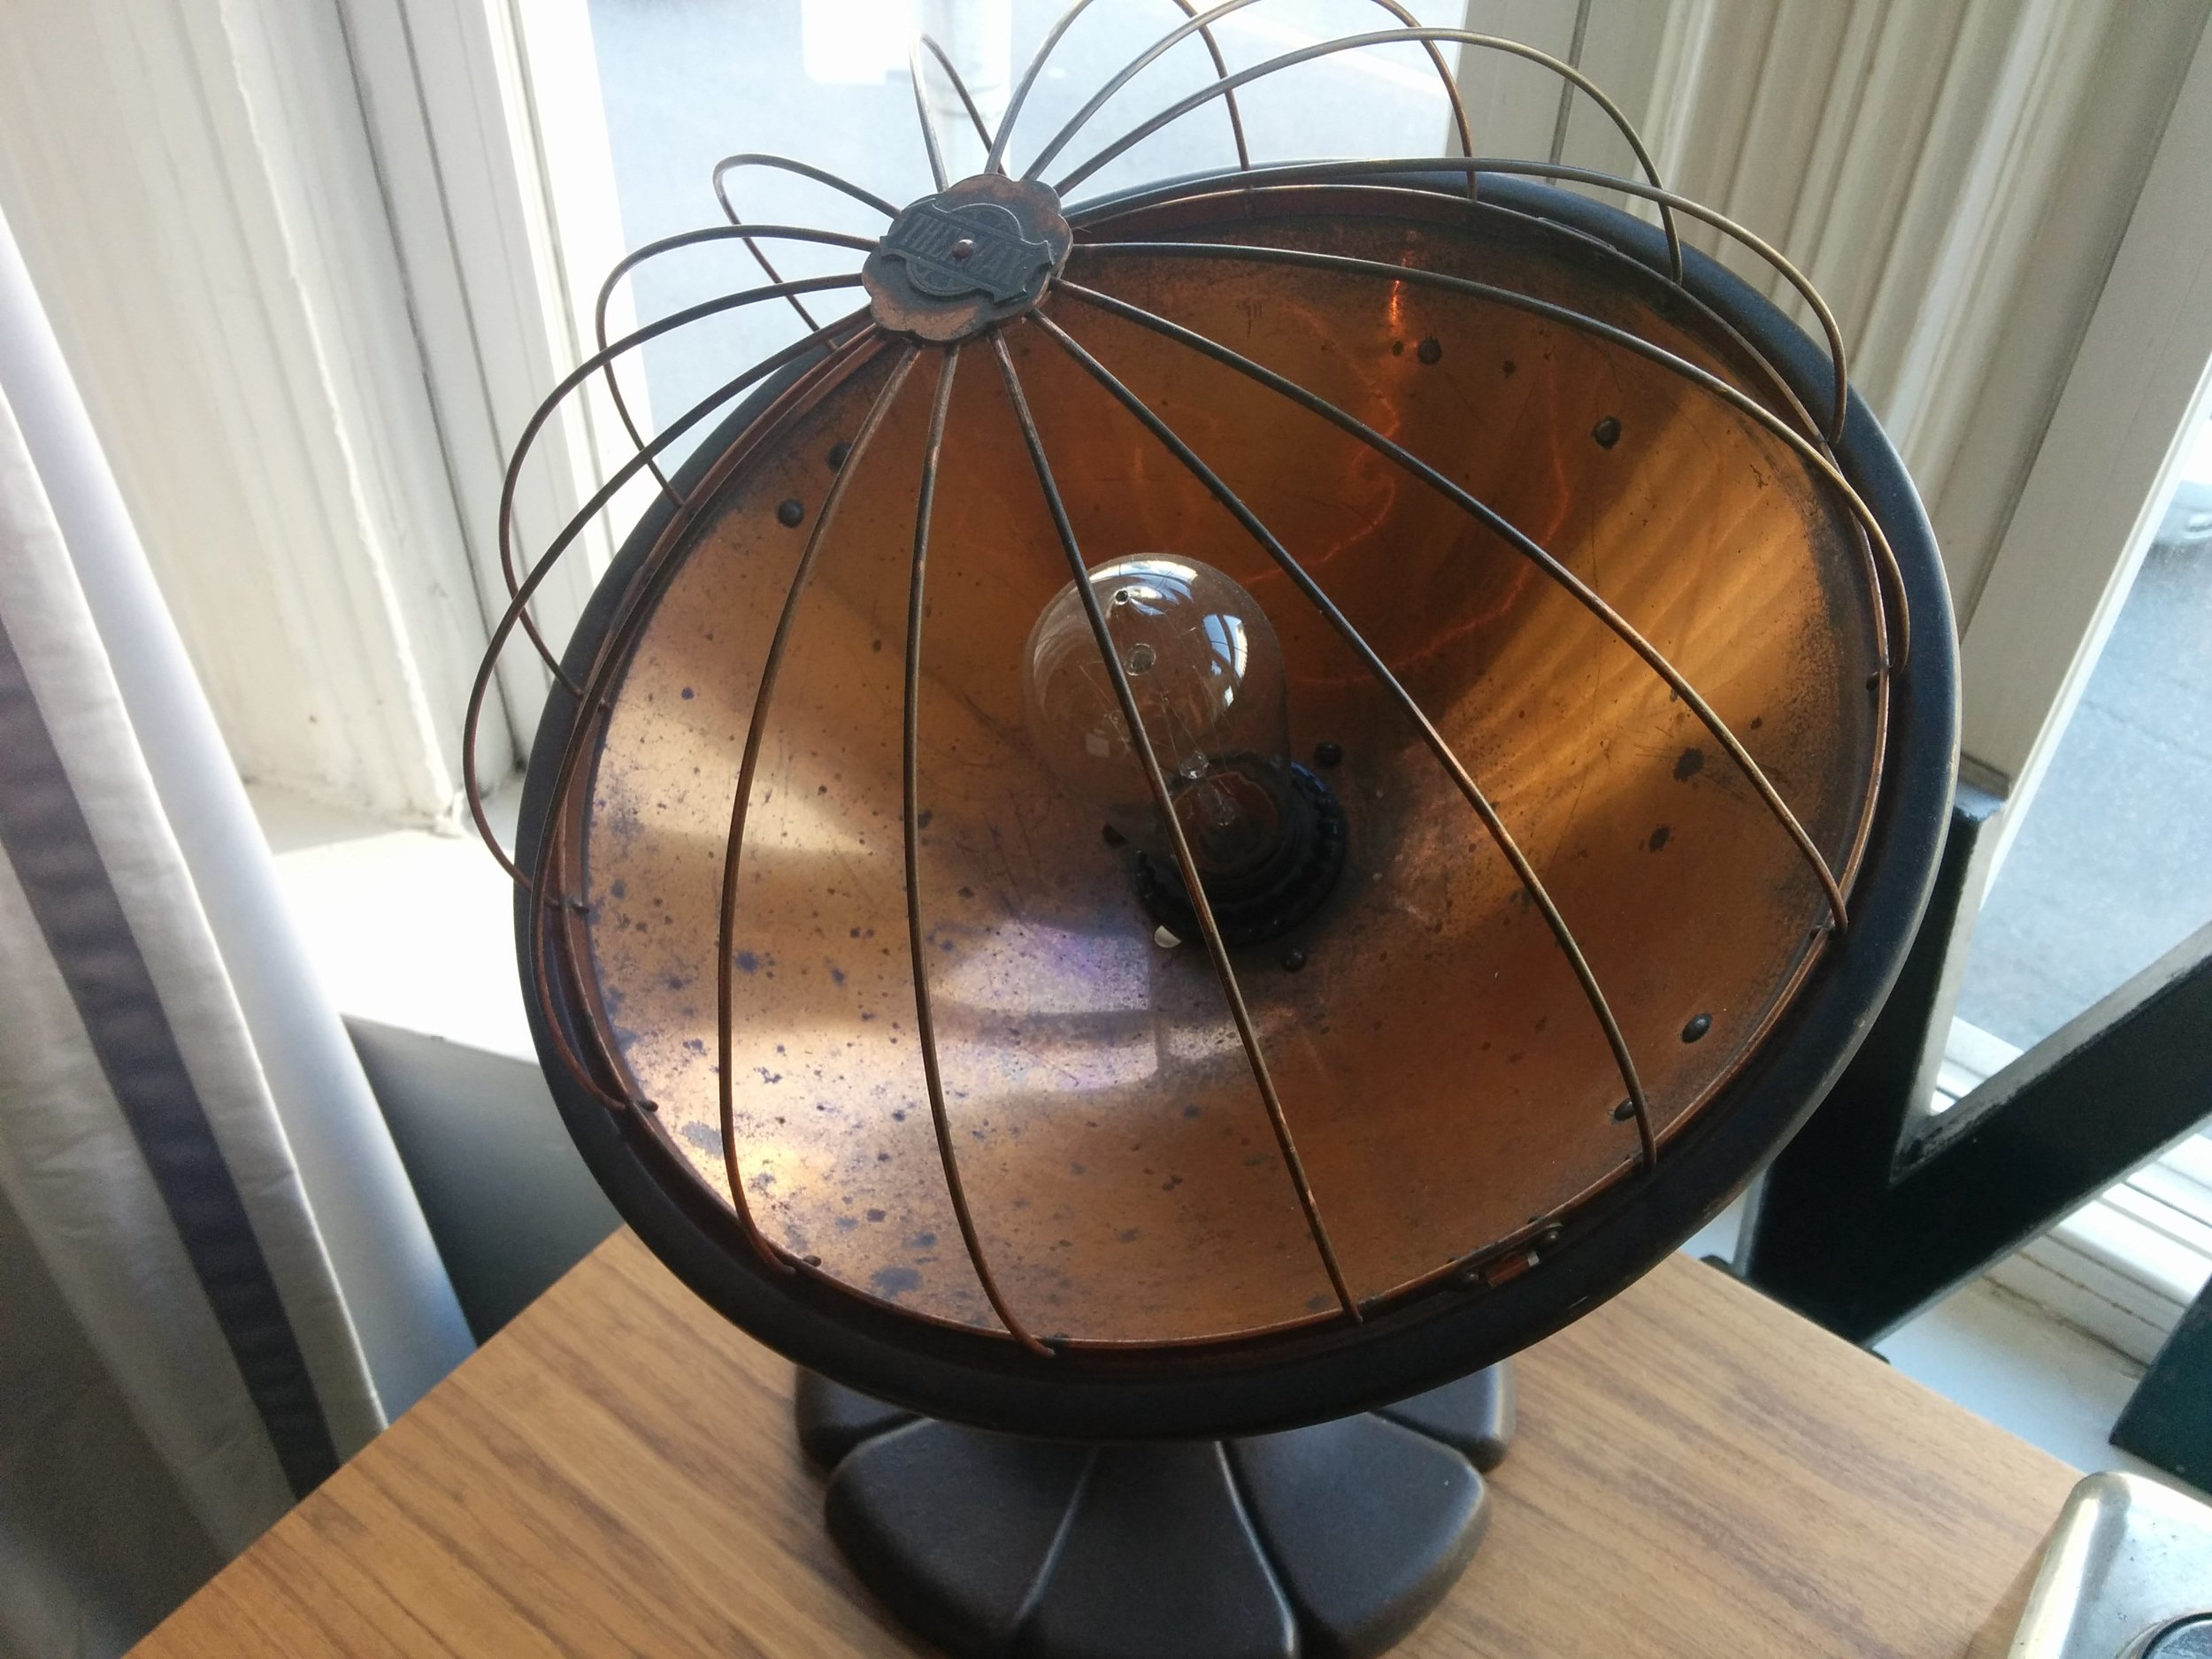 This vintage lamp is a rare find and definitely an eye-catcher because of it's unique form.